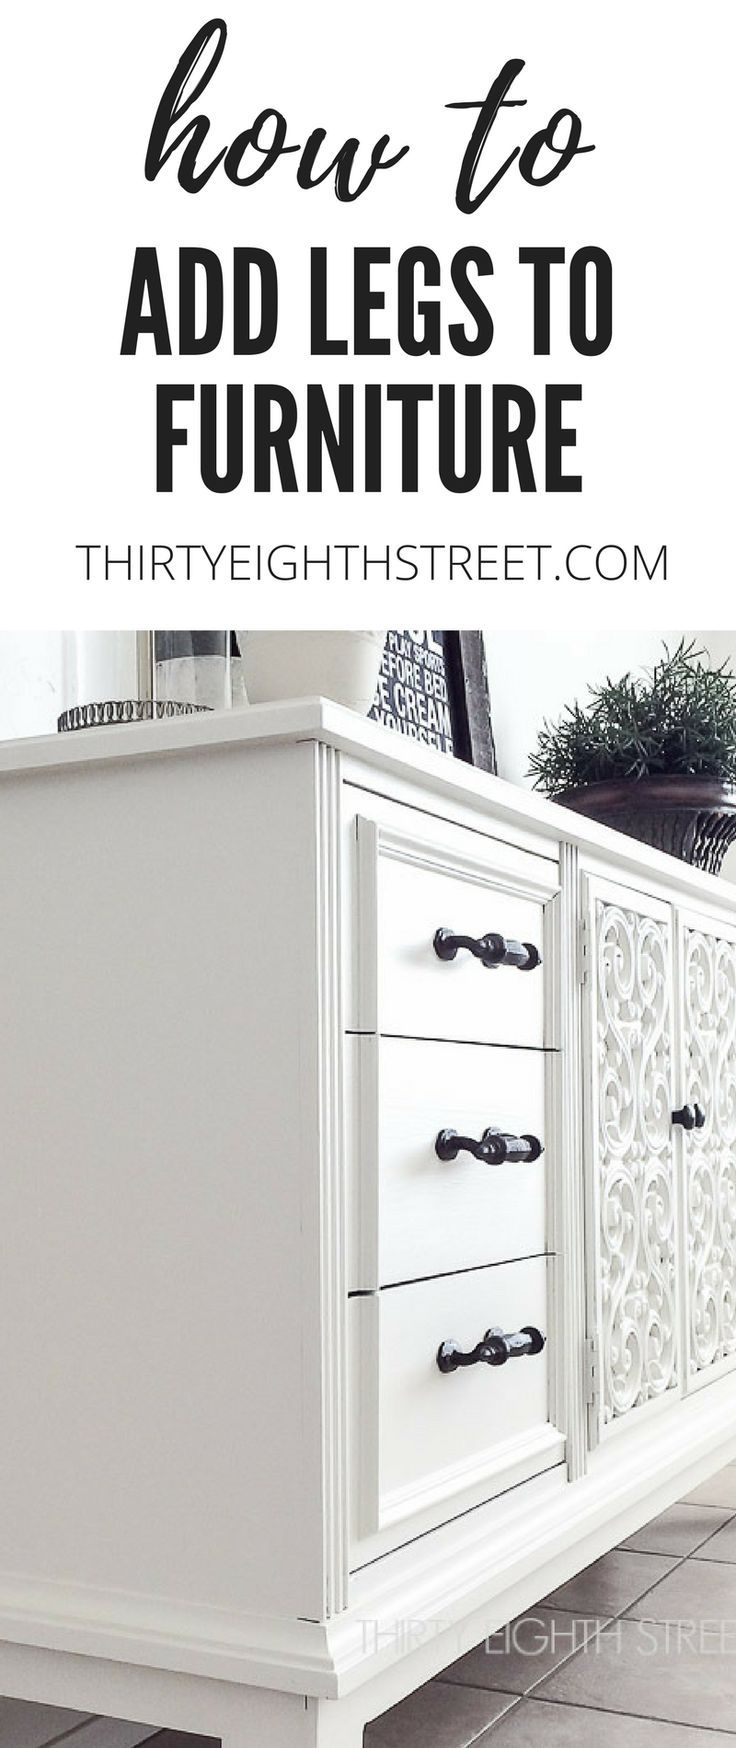 How To Add Inexpensive Fence Posts To Furniture for Legs! SO MANY AMAZING Furniture Before and After Makeovers | Thirty Eighth Street